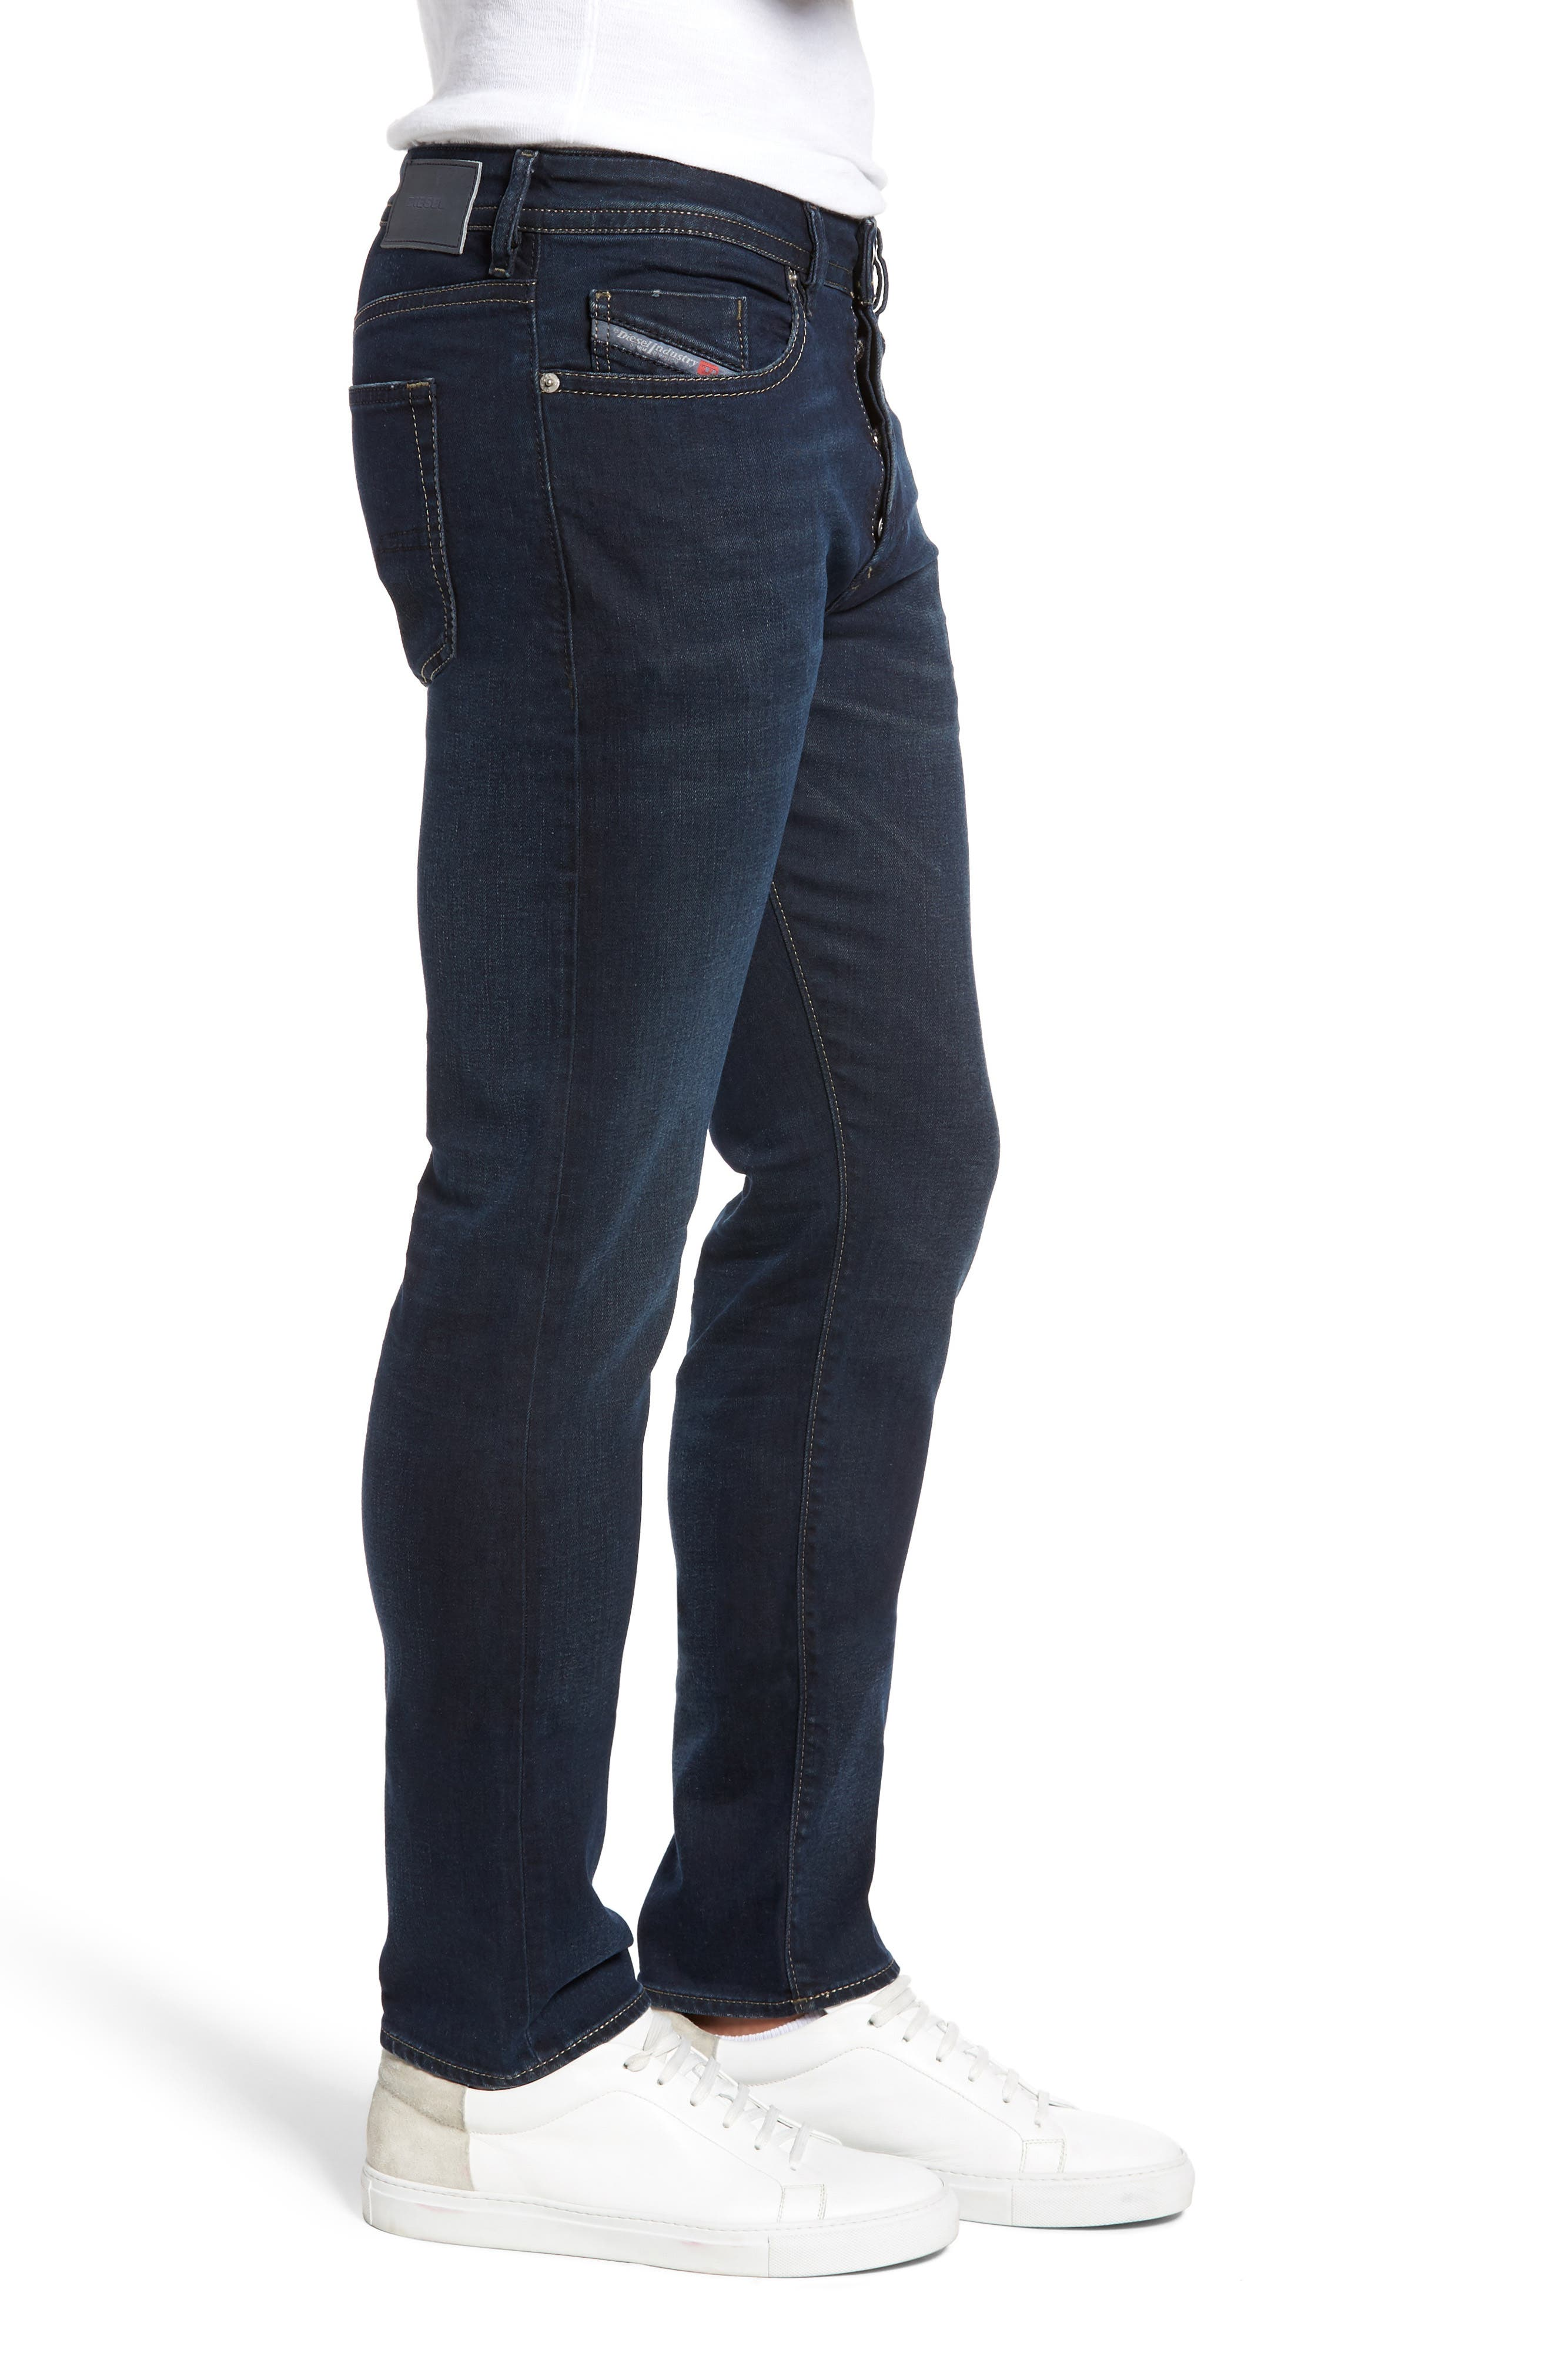 Buster Slim Straight Fit Jeans,                             Alternate thumbnail 3, color,                             Denim